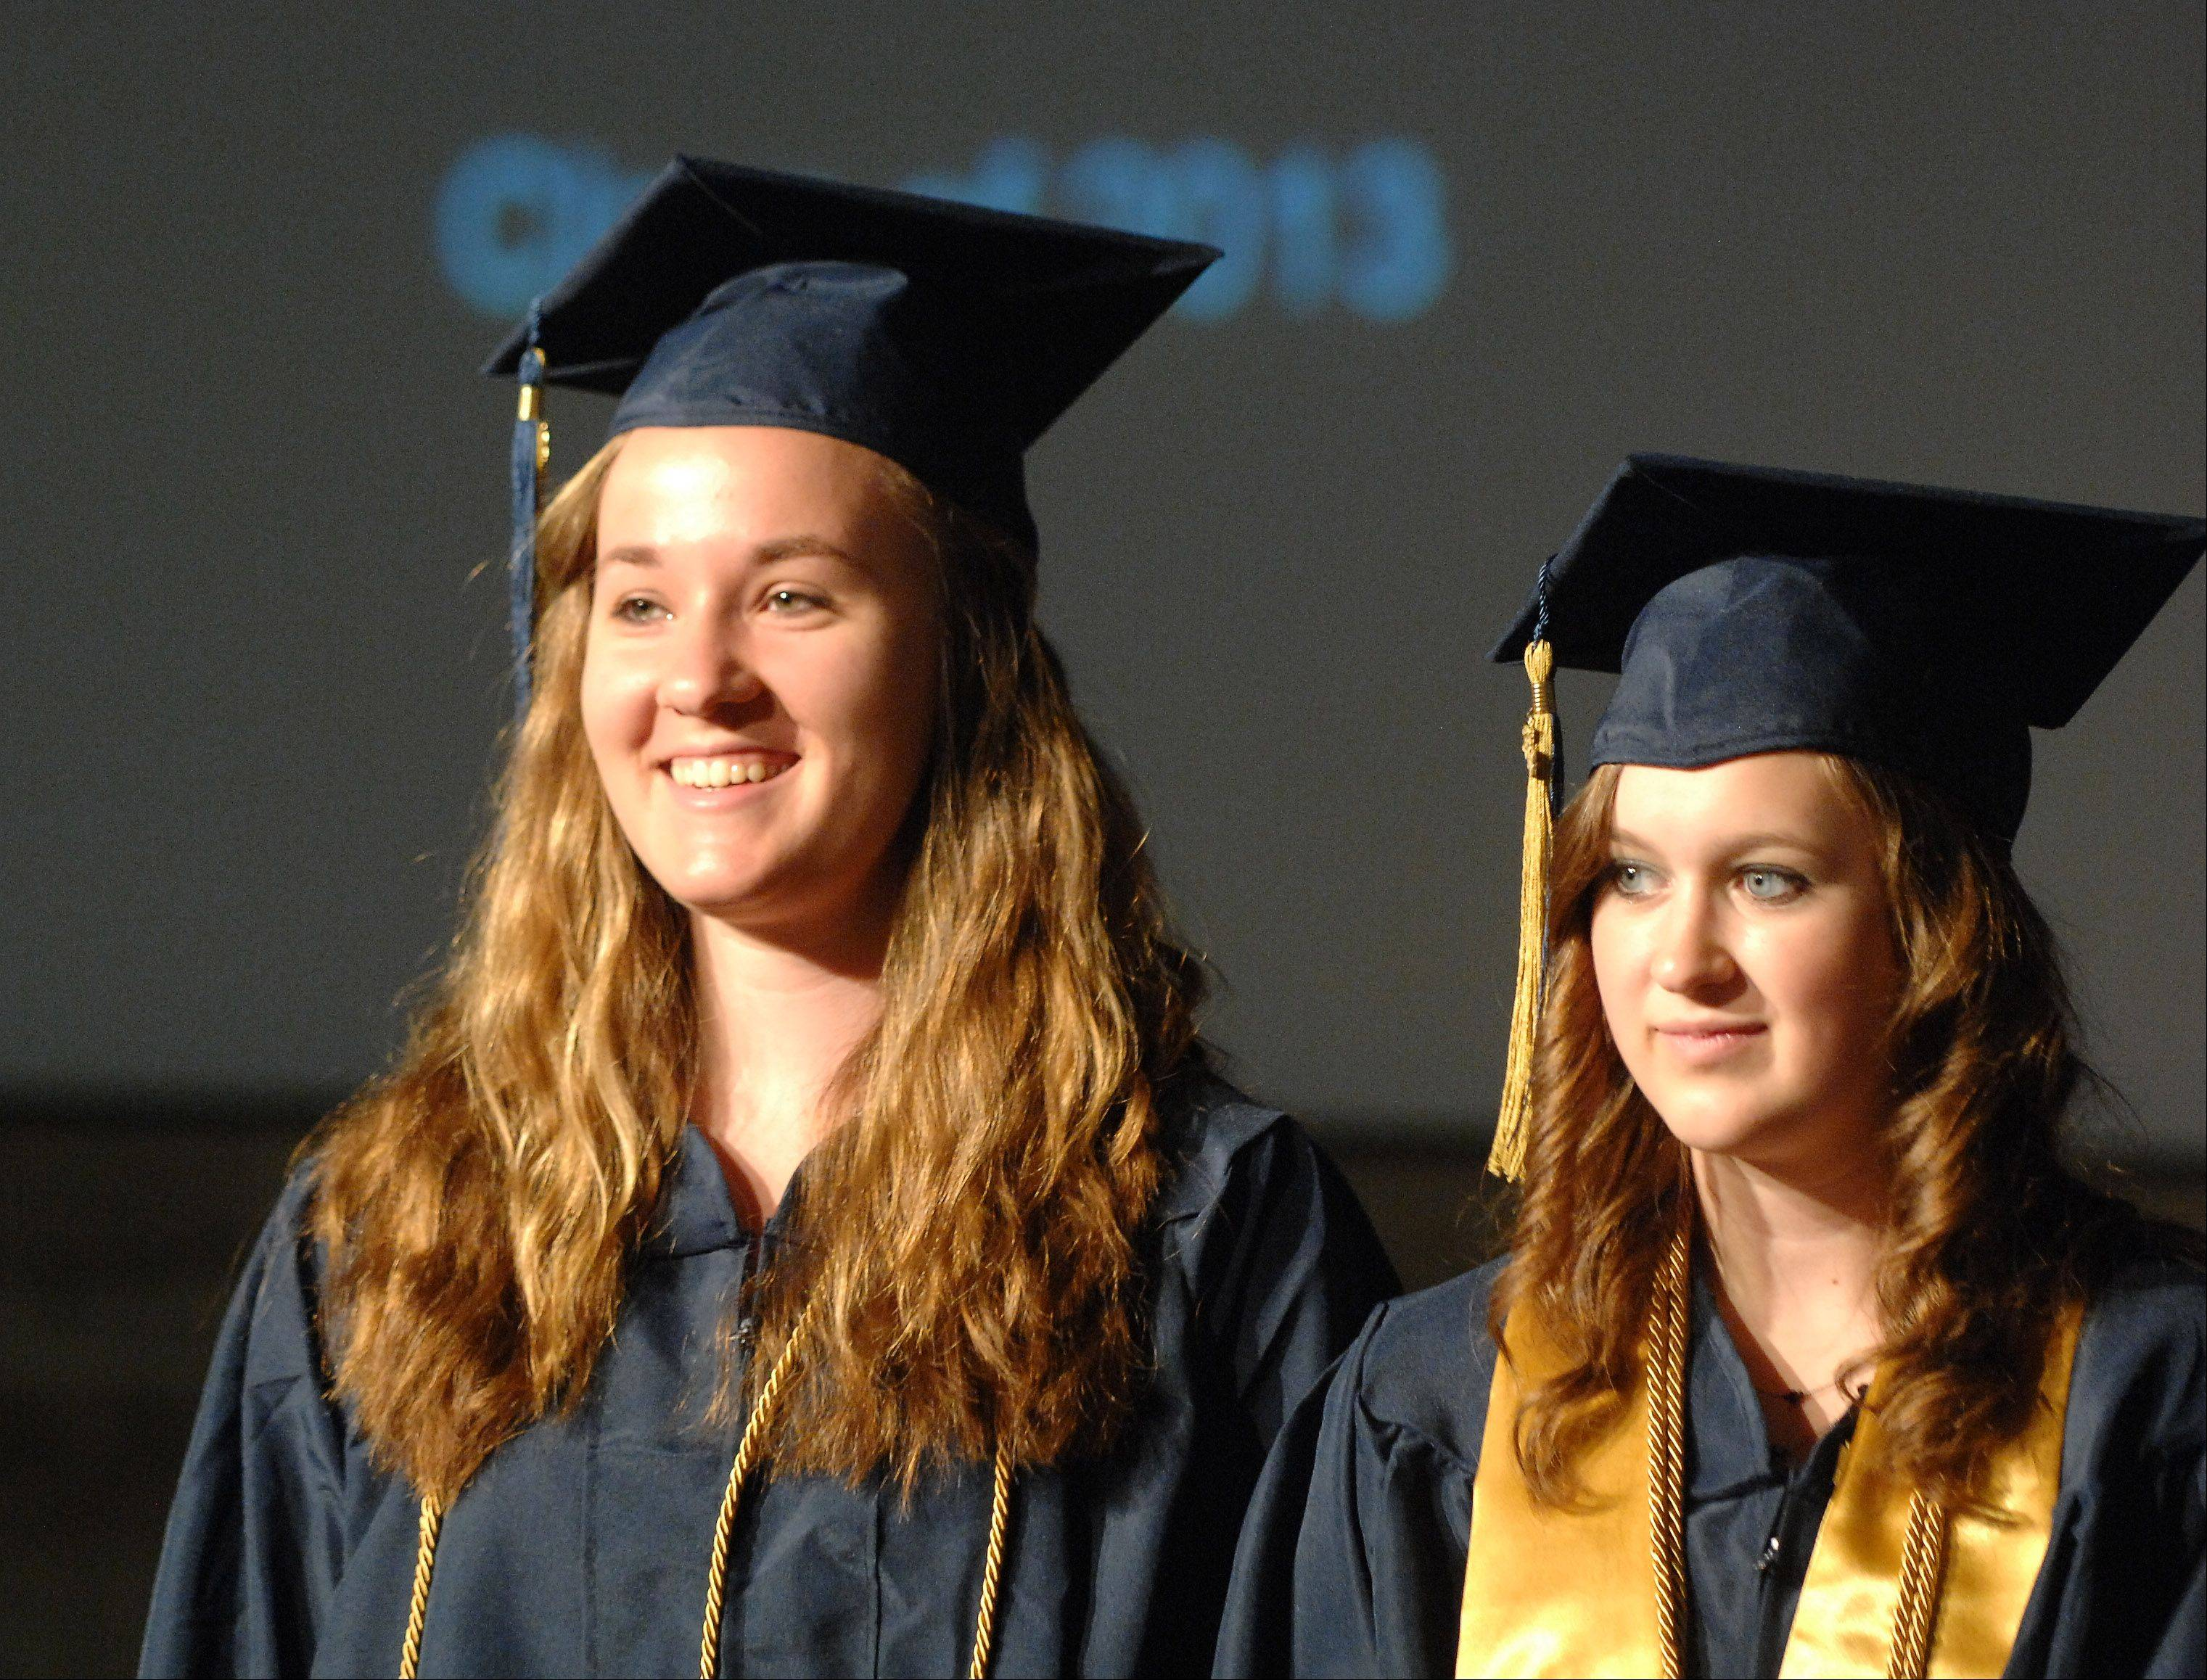 Images from the Harvest Christian Academy graduation ceremony Saturday, May 18, 2013 in Elgin.